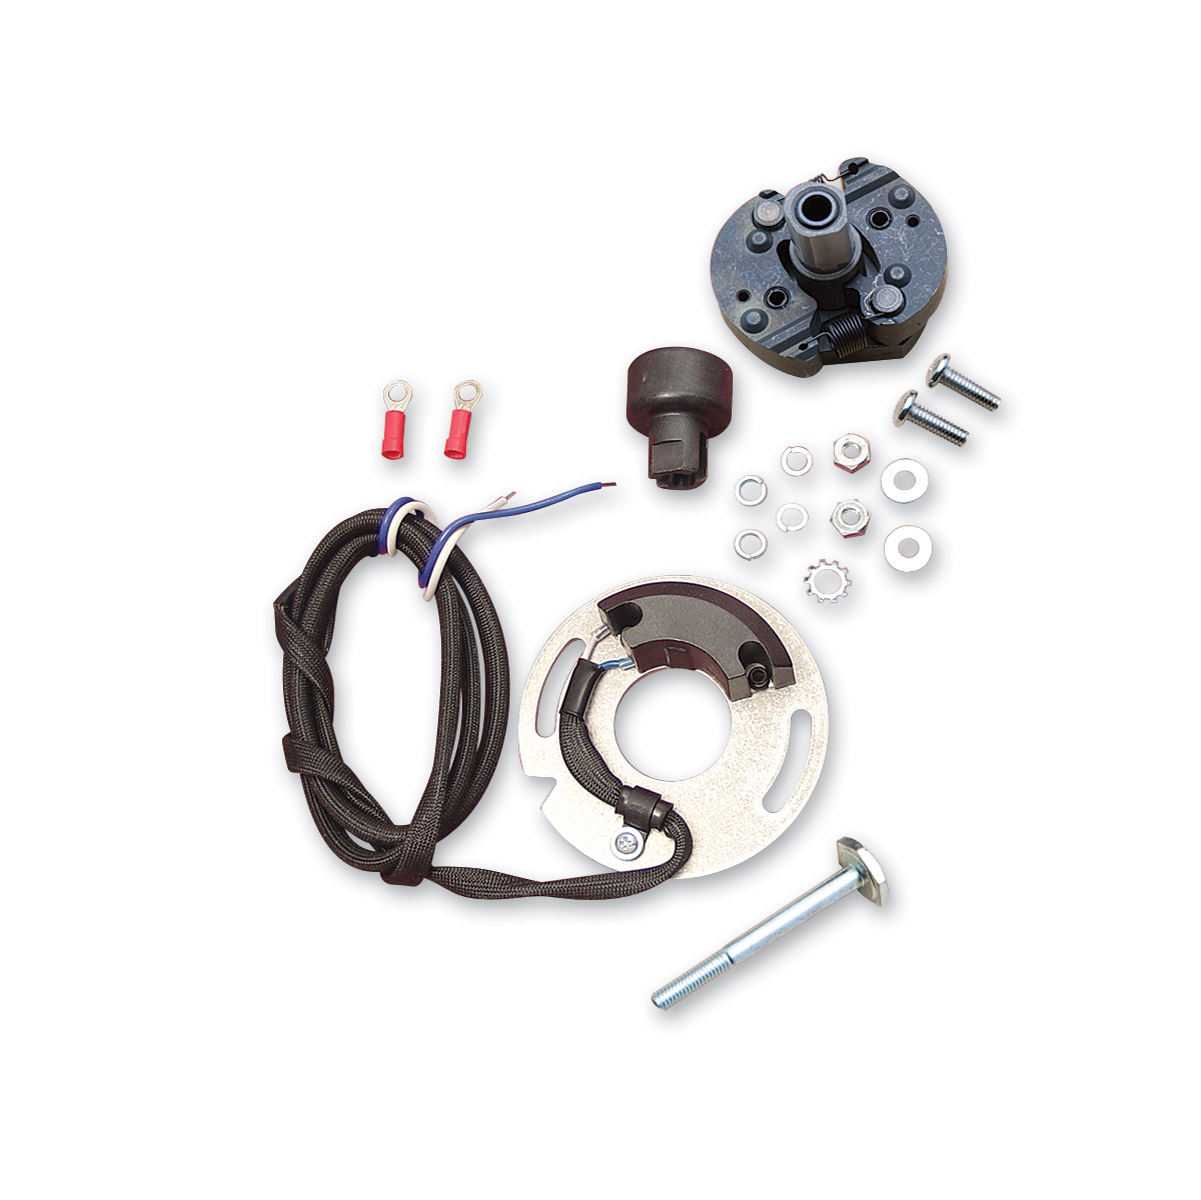 hight resolution of  380 443 a coil pick up wiring question the sportster and buell motorcycle dyna s ignition wiring